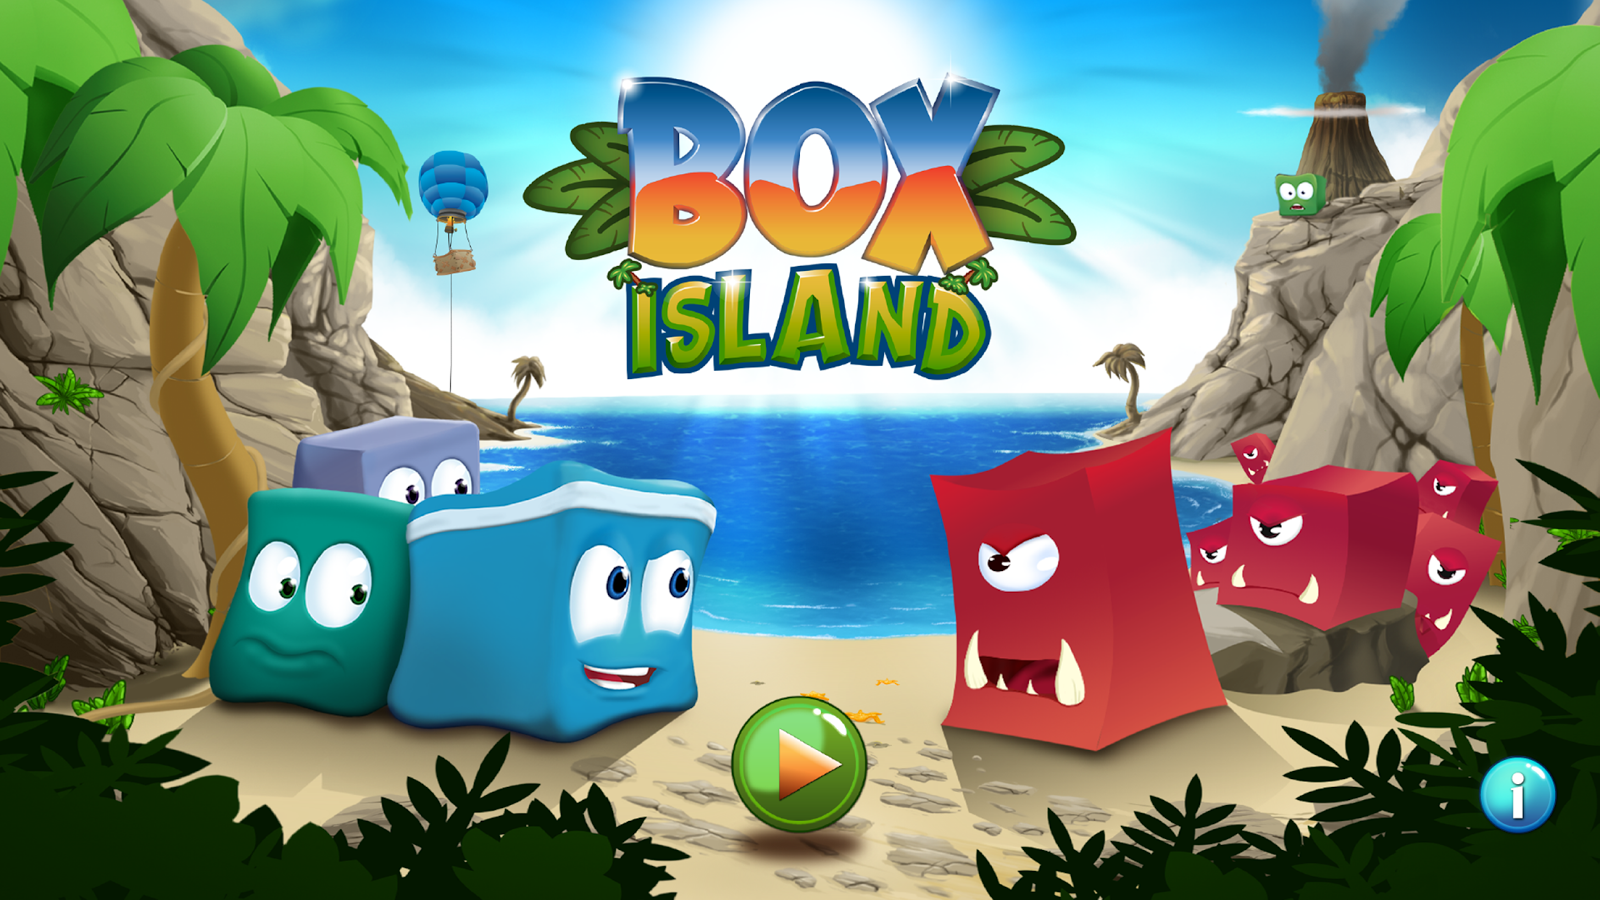 Box Island - Kids Coding Game! (Unreleased) Screenshot 9